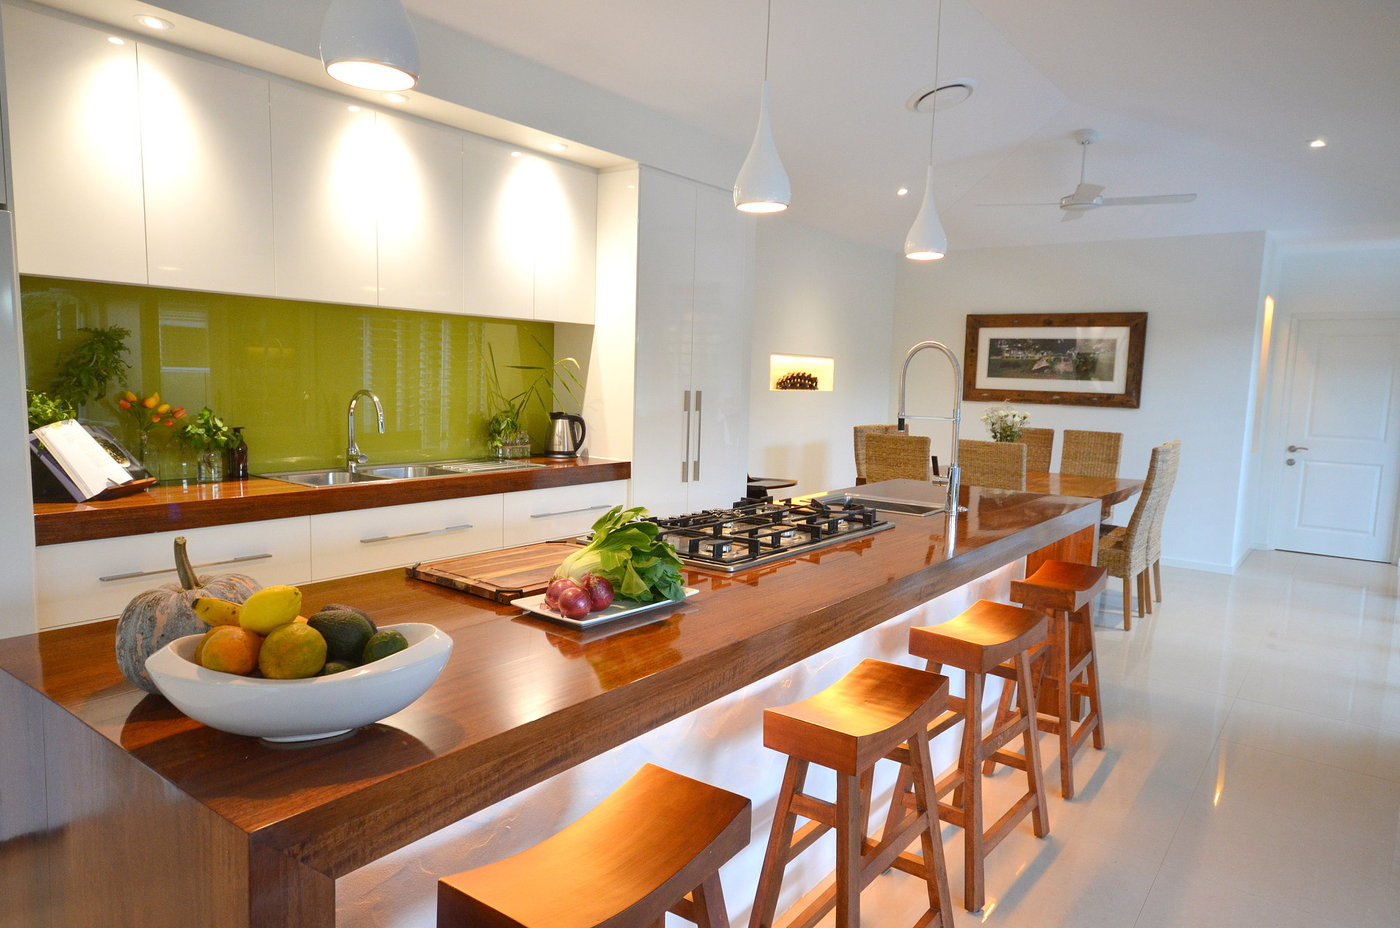 New kitchen design with island bench and wooden stools